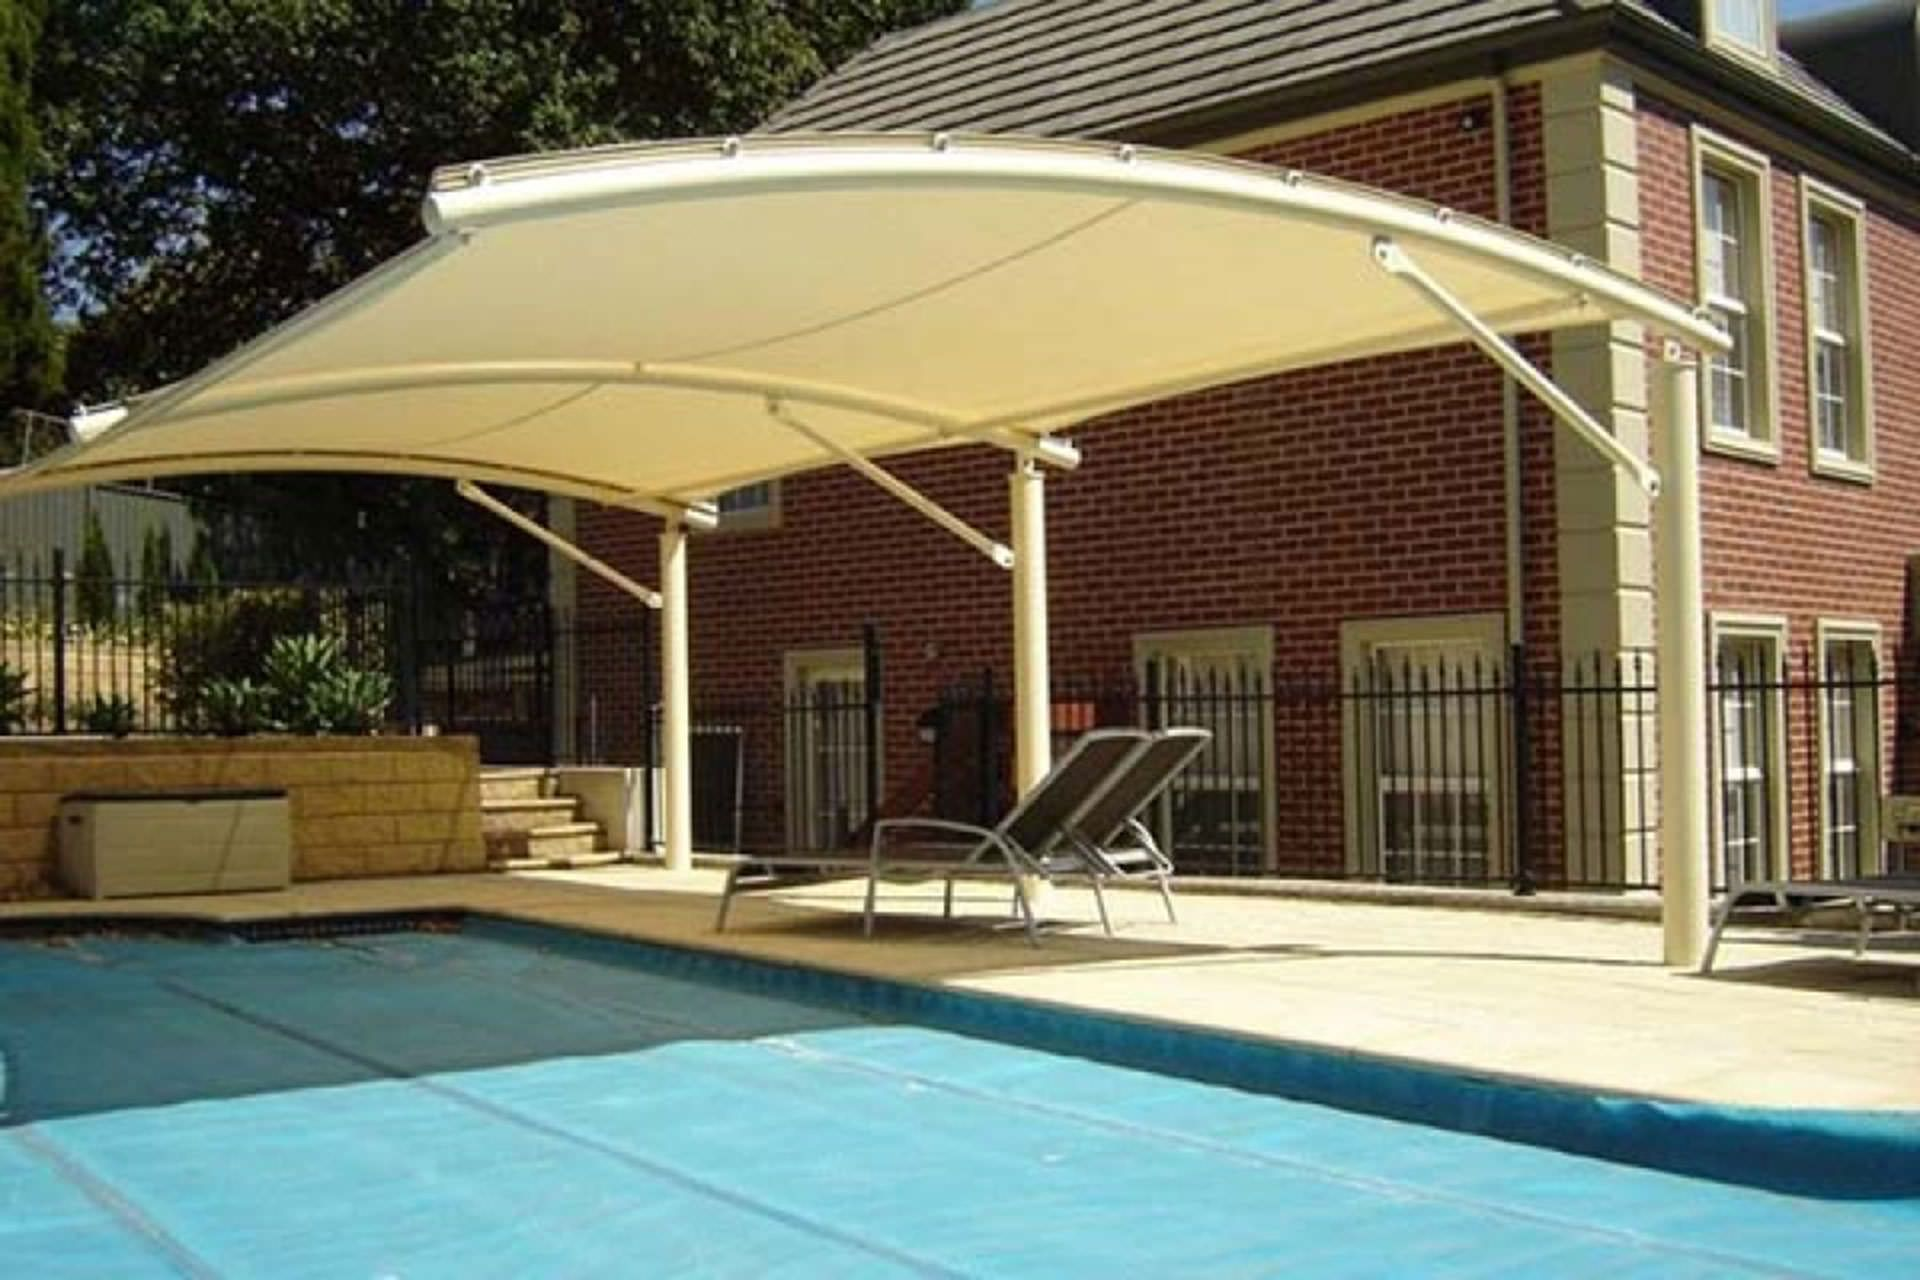 Pool Shade Ideas Cantilevered Landscaping & Outdoor